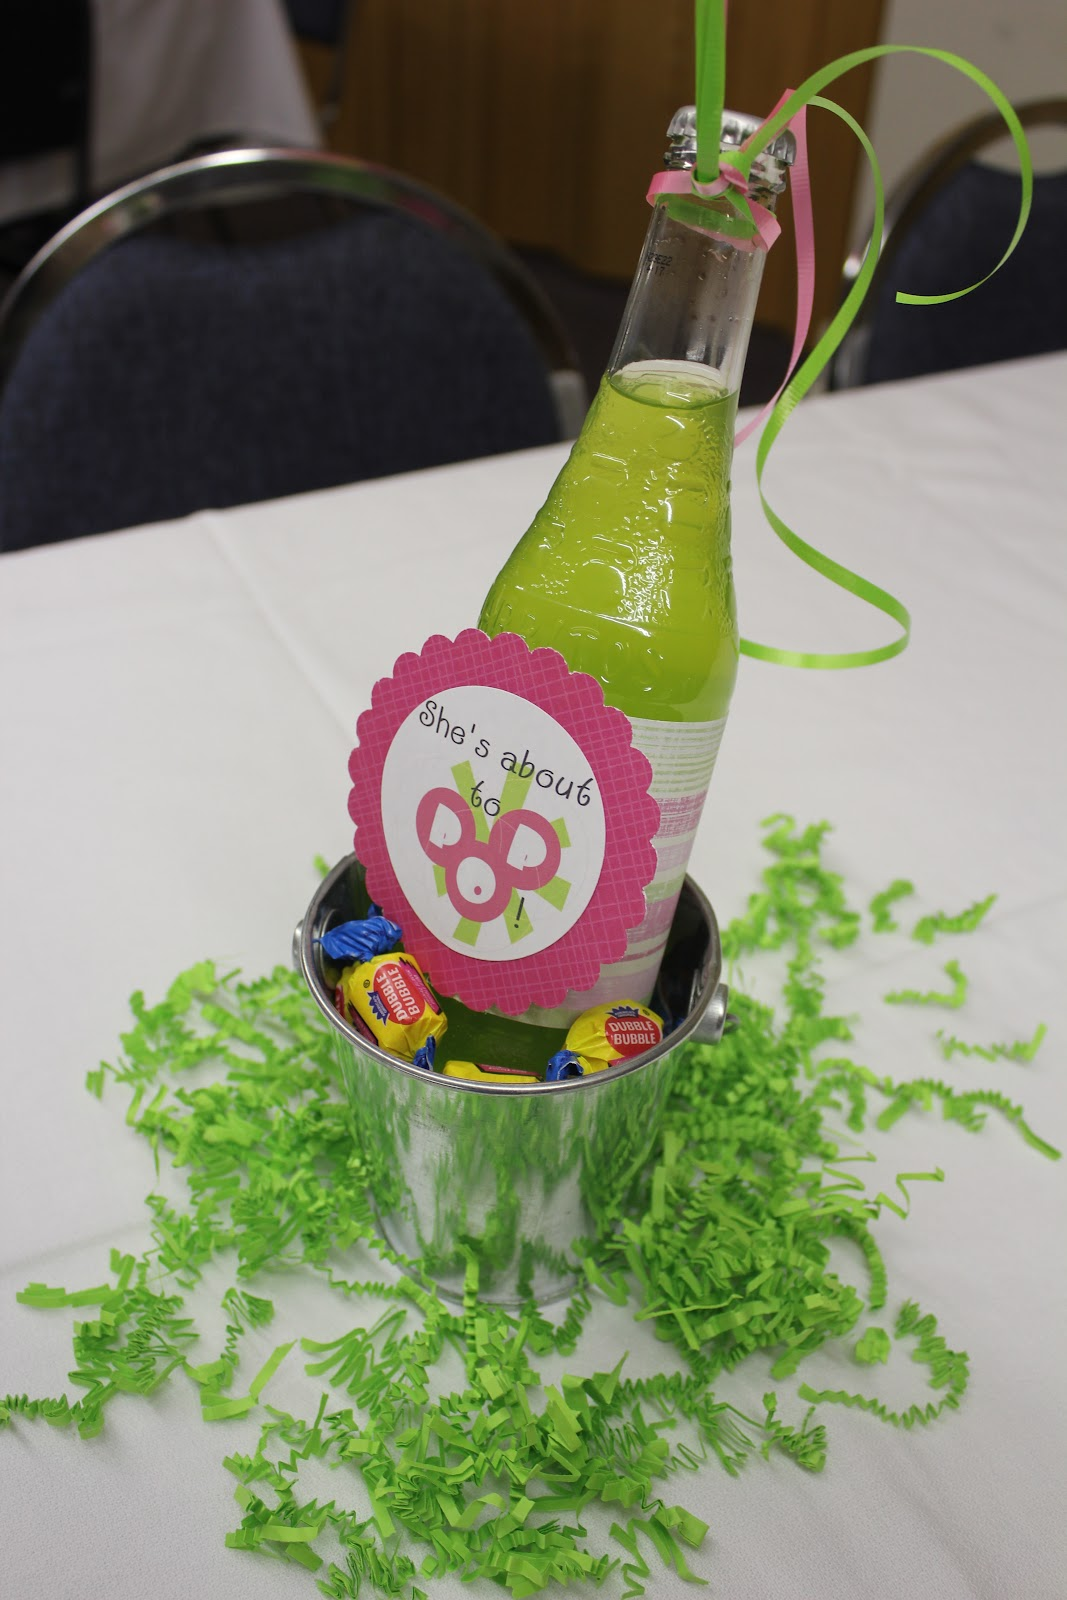 A blissful bash pink and lime green quot she s about to pop